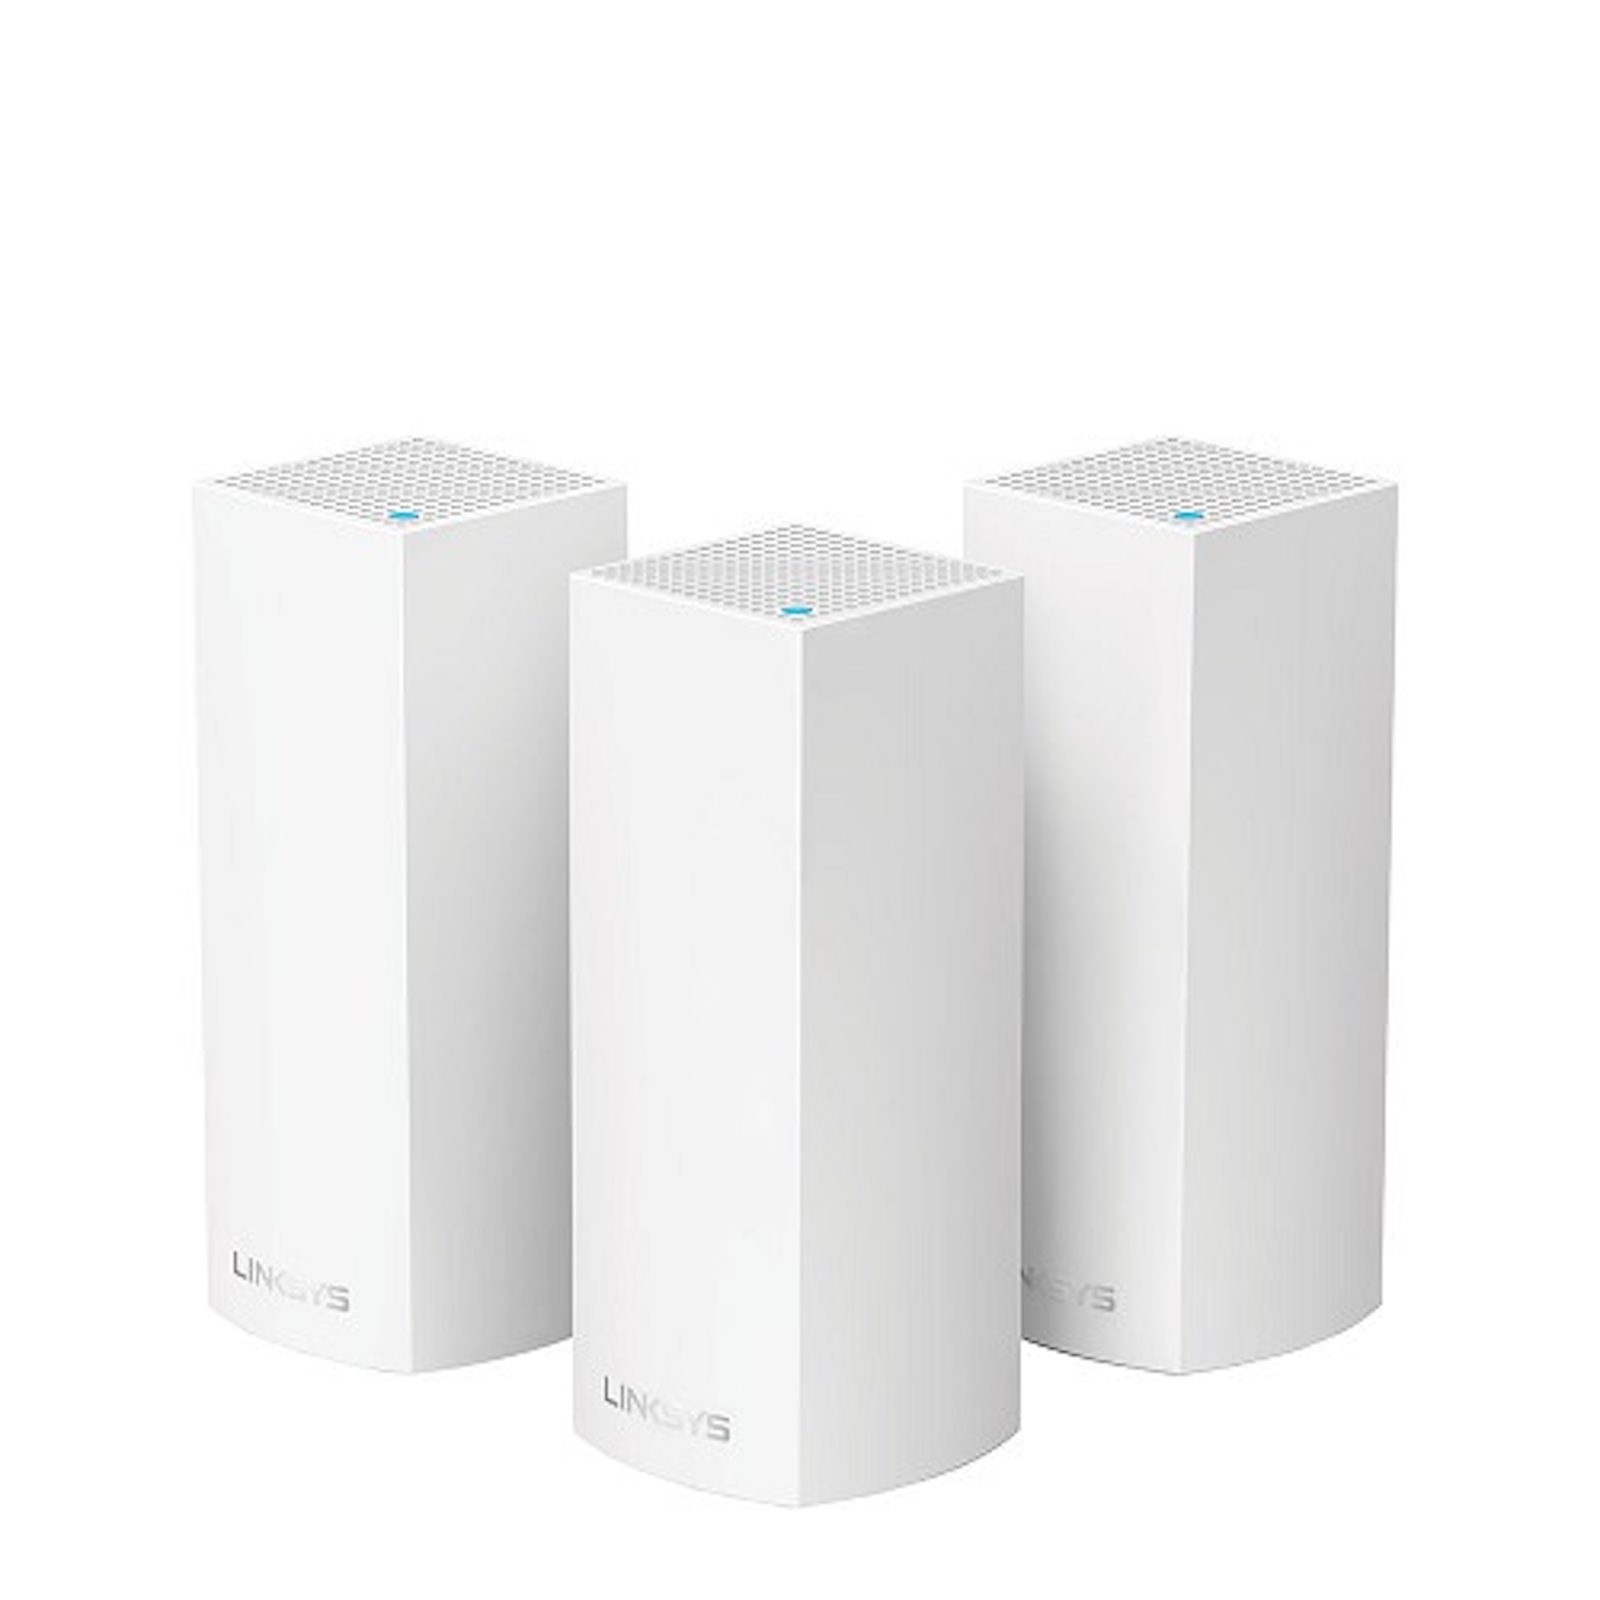 Linksys-Velop-WiFi-Router-2.jpg